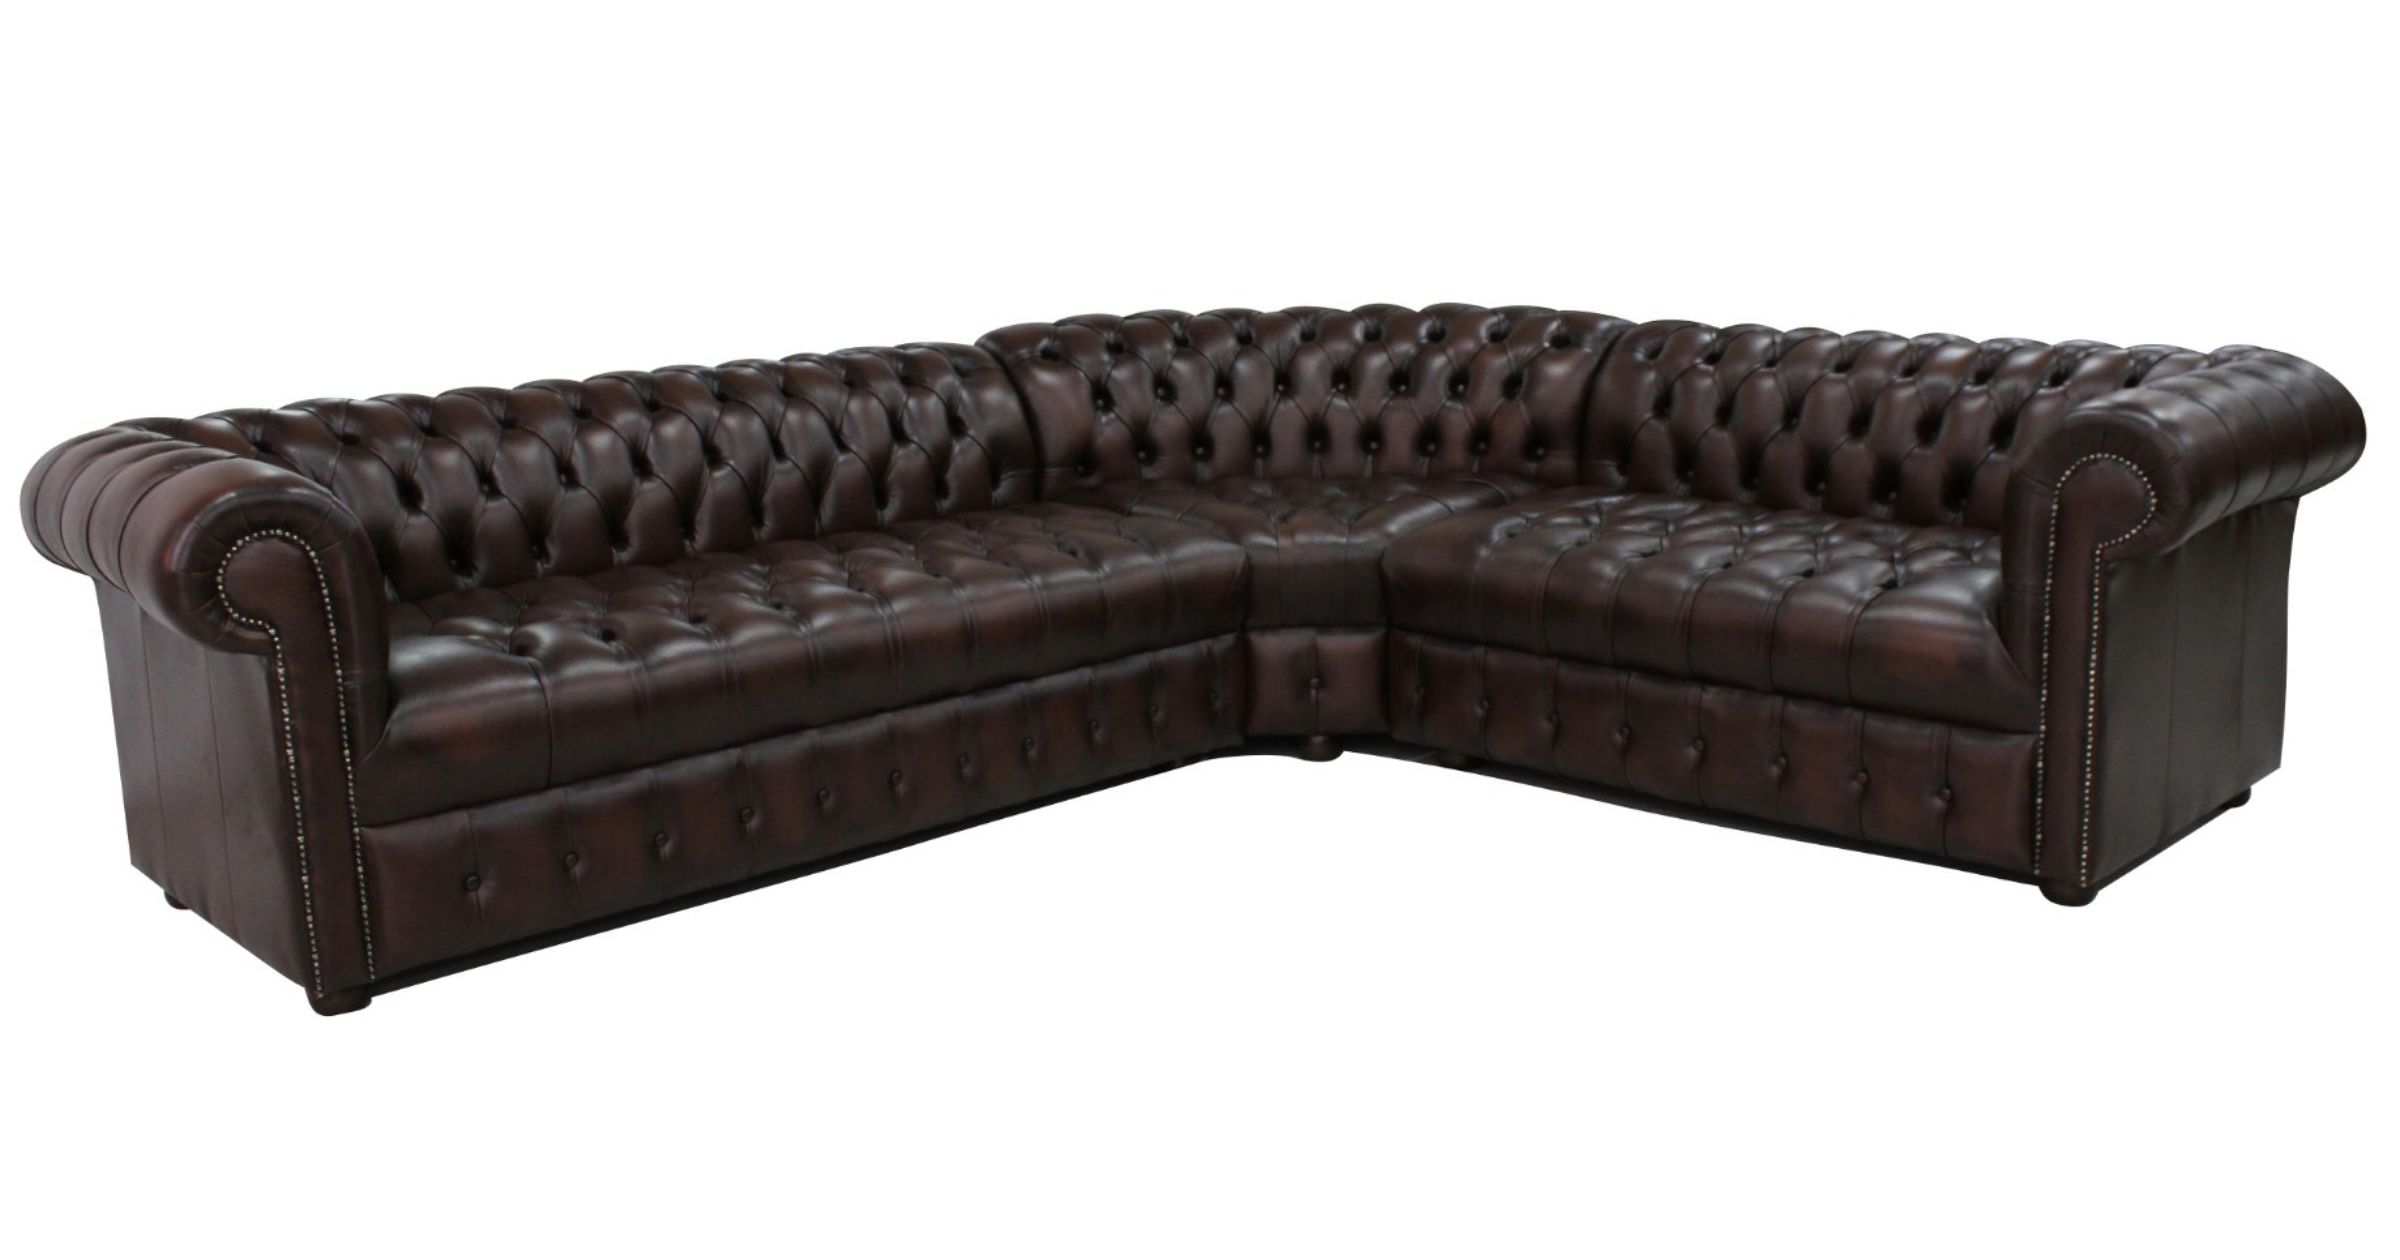 4 Seater Chesterfield Corner Sofa Chesterfield Corner Sofa Unit Buttoned Seat 3 Seater